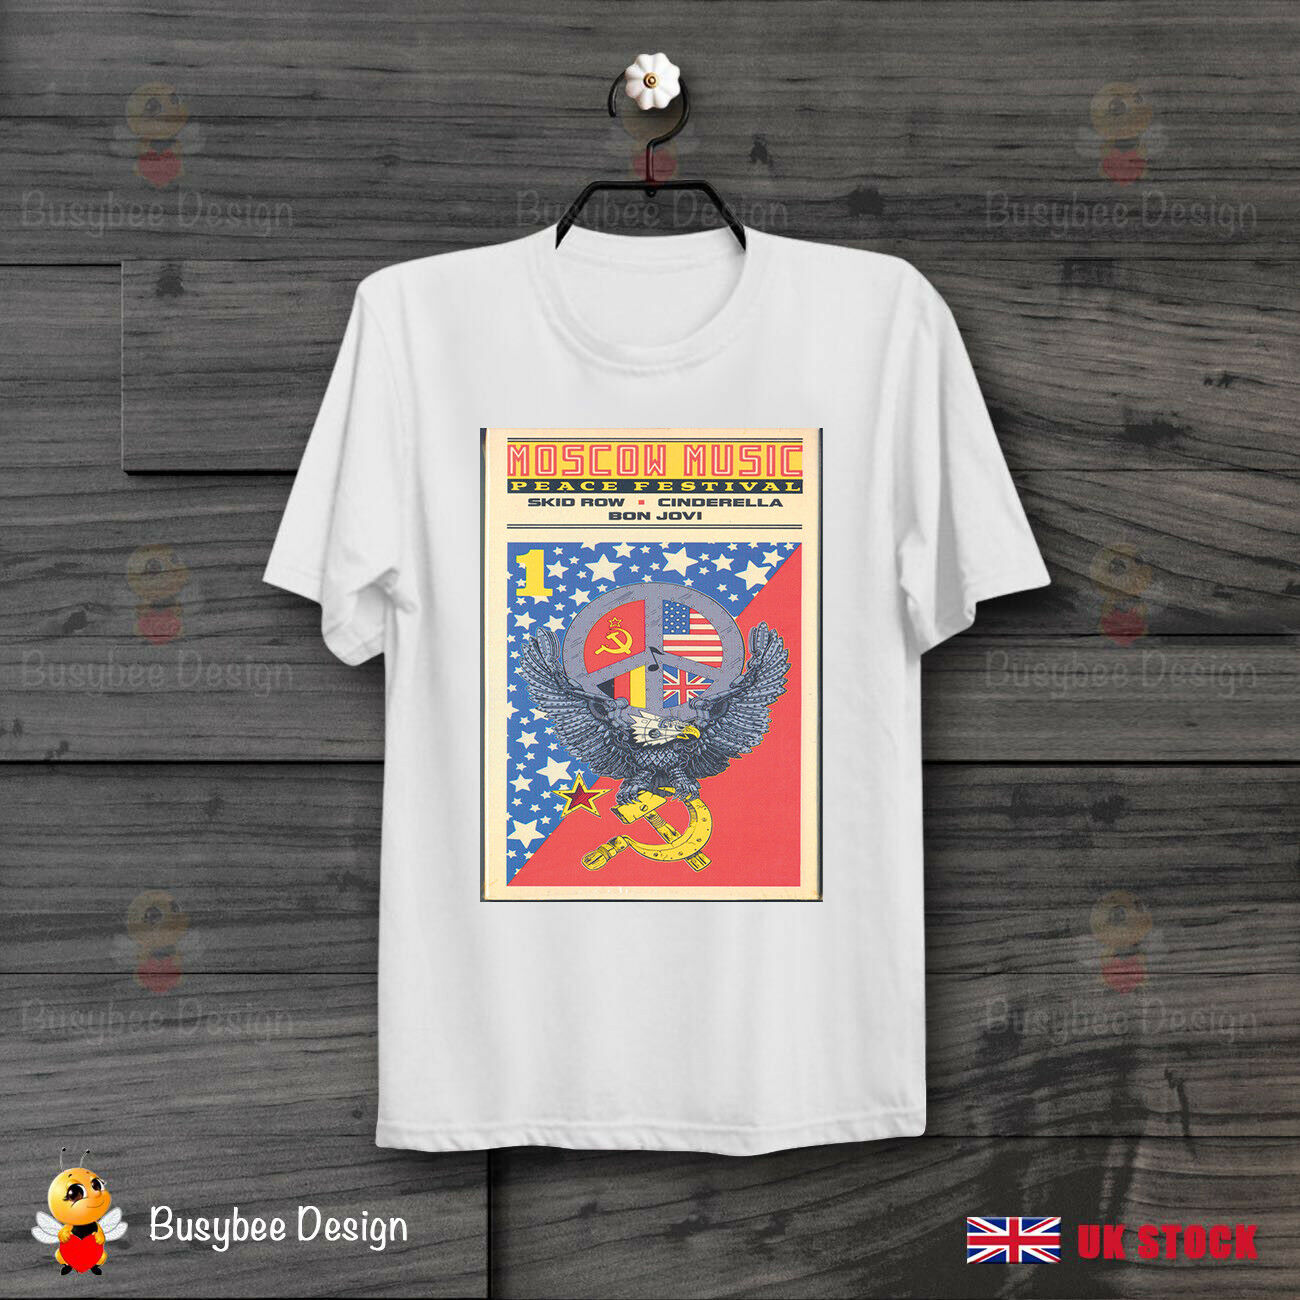 Moscow Music Festival Poster <font><b>T</b></font> <font><b>Shirt</b></font> 80S Rock Motley Crue Bon Jovi <font><b>Skid</b></font> <font><b>Row</b></font> Hot 2019 Fashion Cotton <font><b>T</b></font>-<font><b>Shirt</b></font> Custom <font><b>T</b></font> <font><b>Shirt</b></font> image